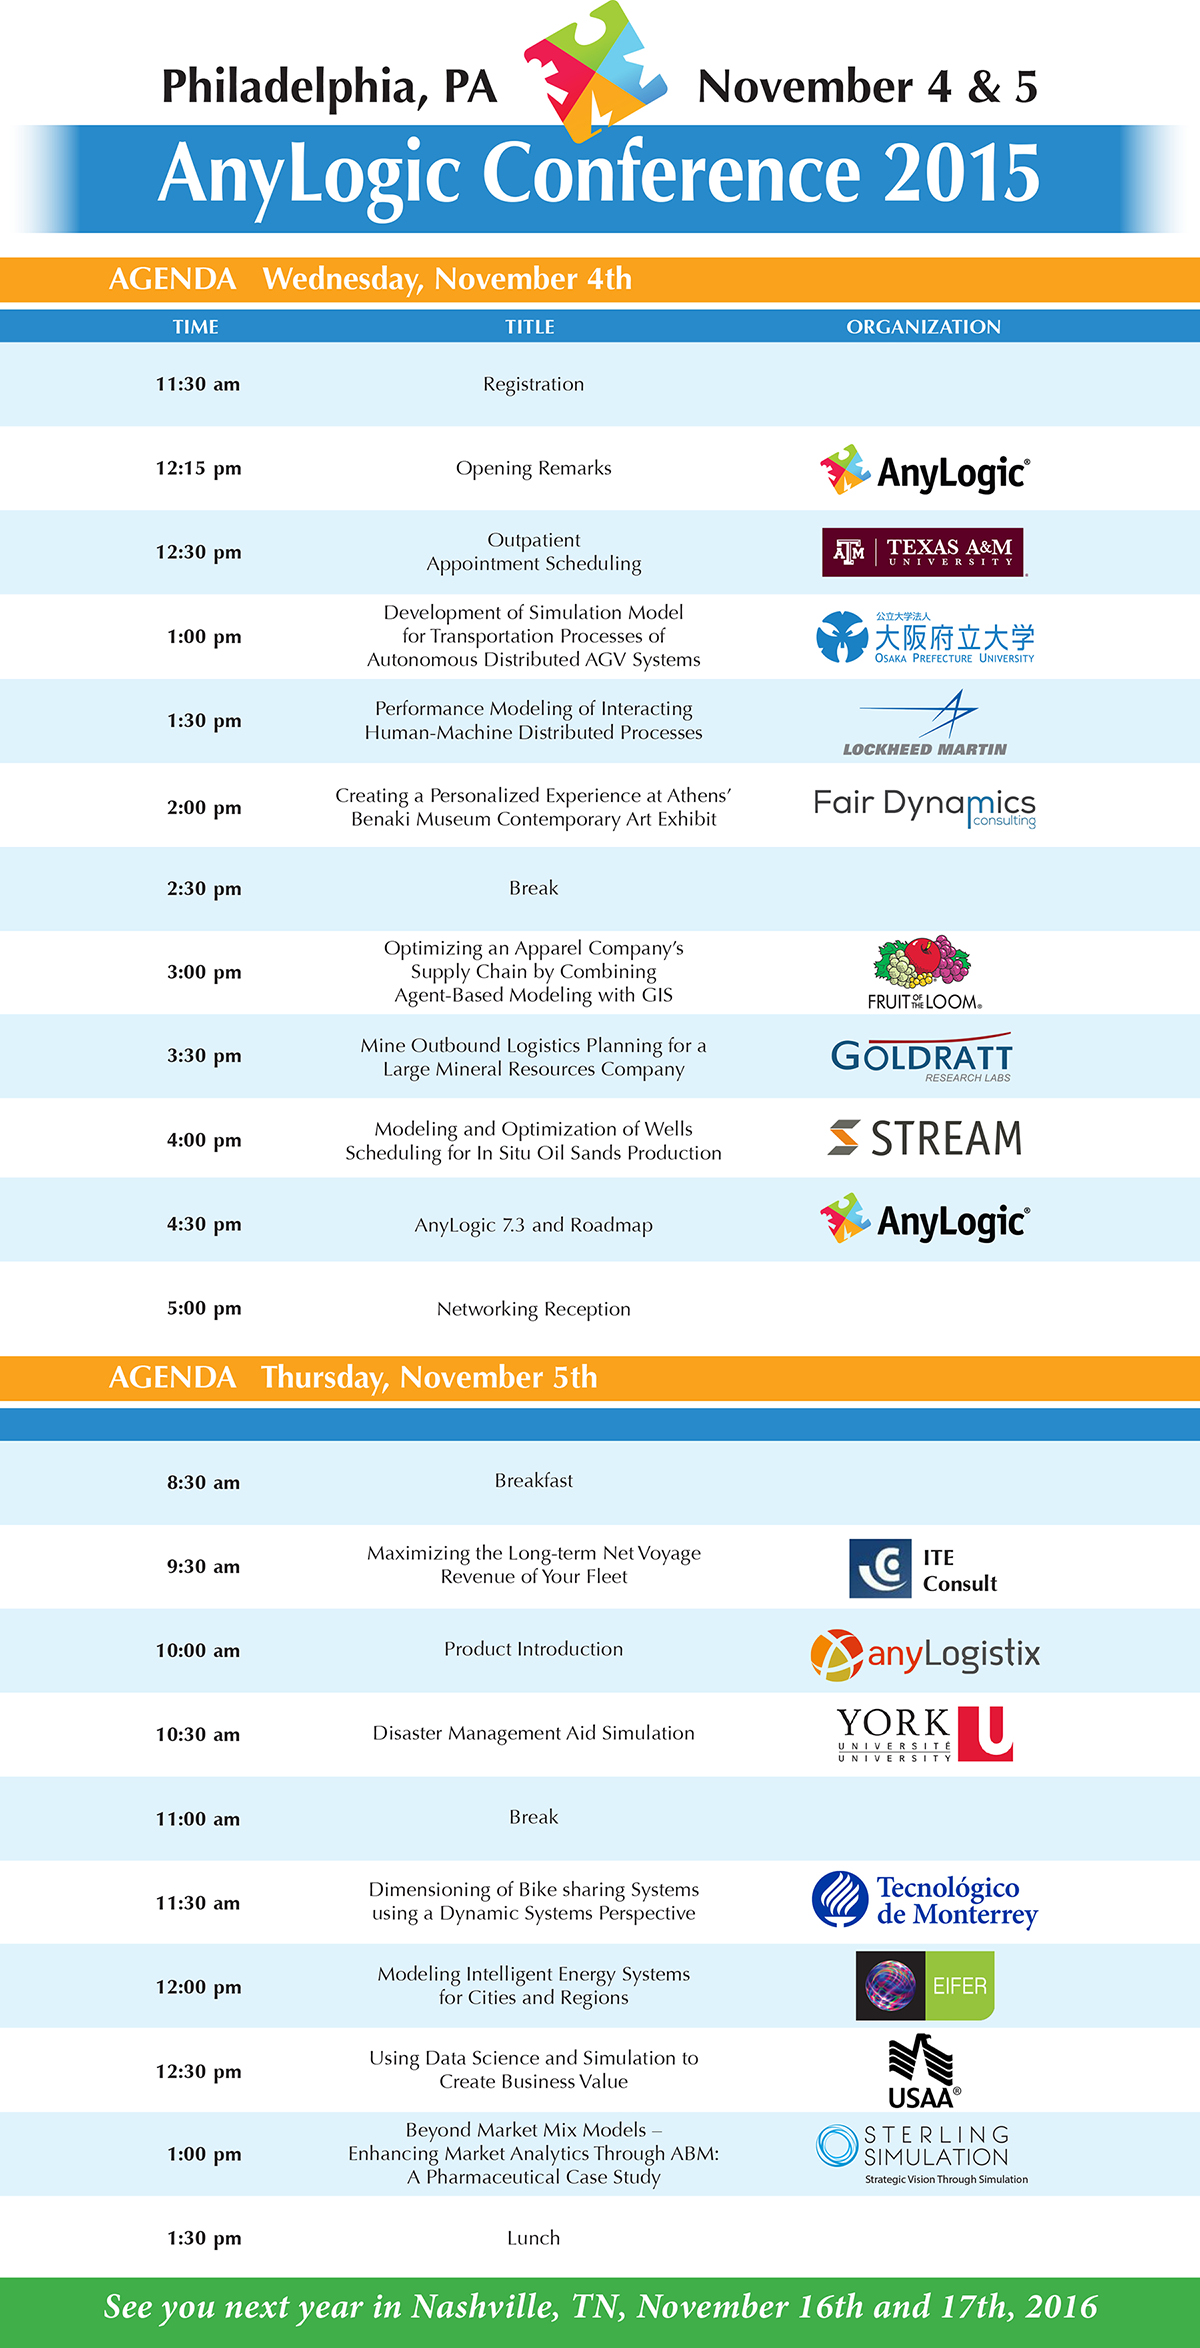 AnyLogic Conference 2015 Schedule